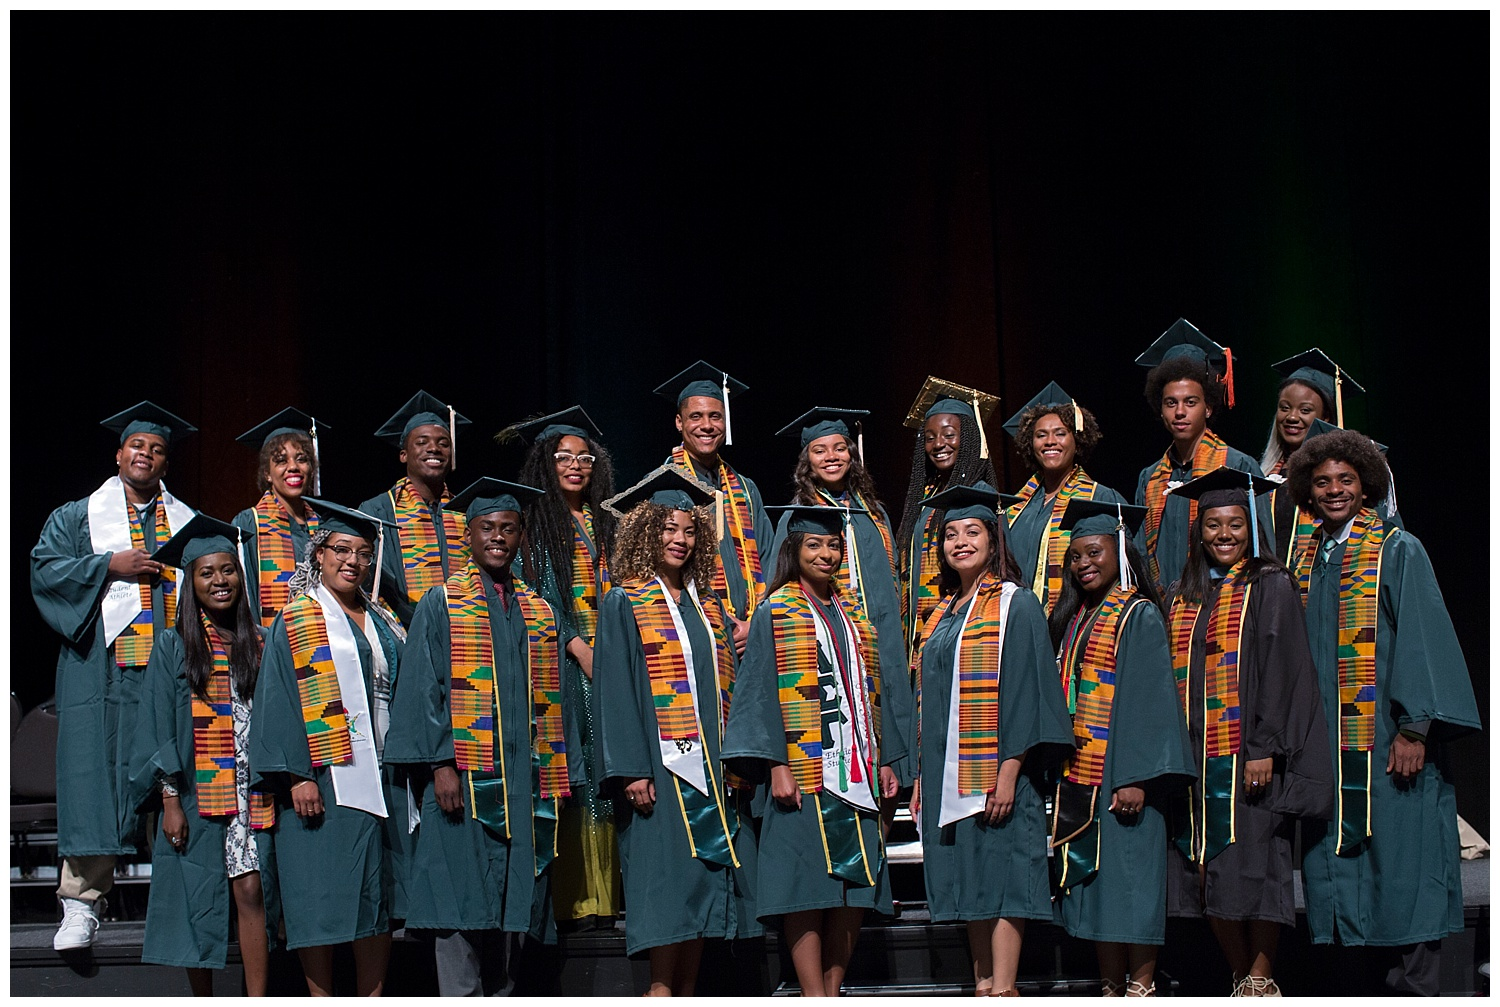 Cal Poly Black Commencement 2017_Renoda Campbell Photography_Special Events photographer_San Luis Obispo-0098.jpg